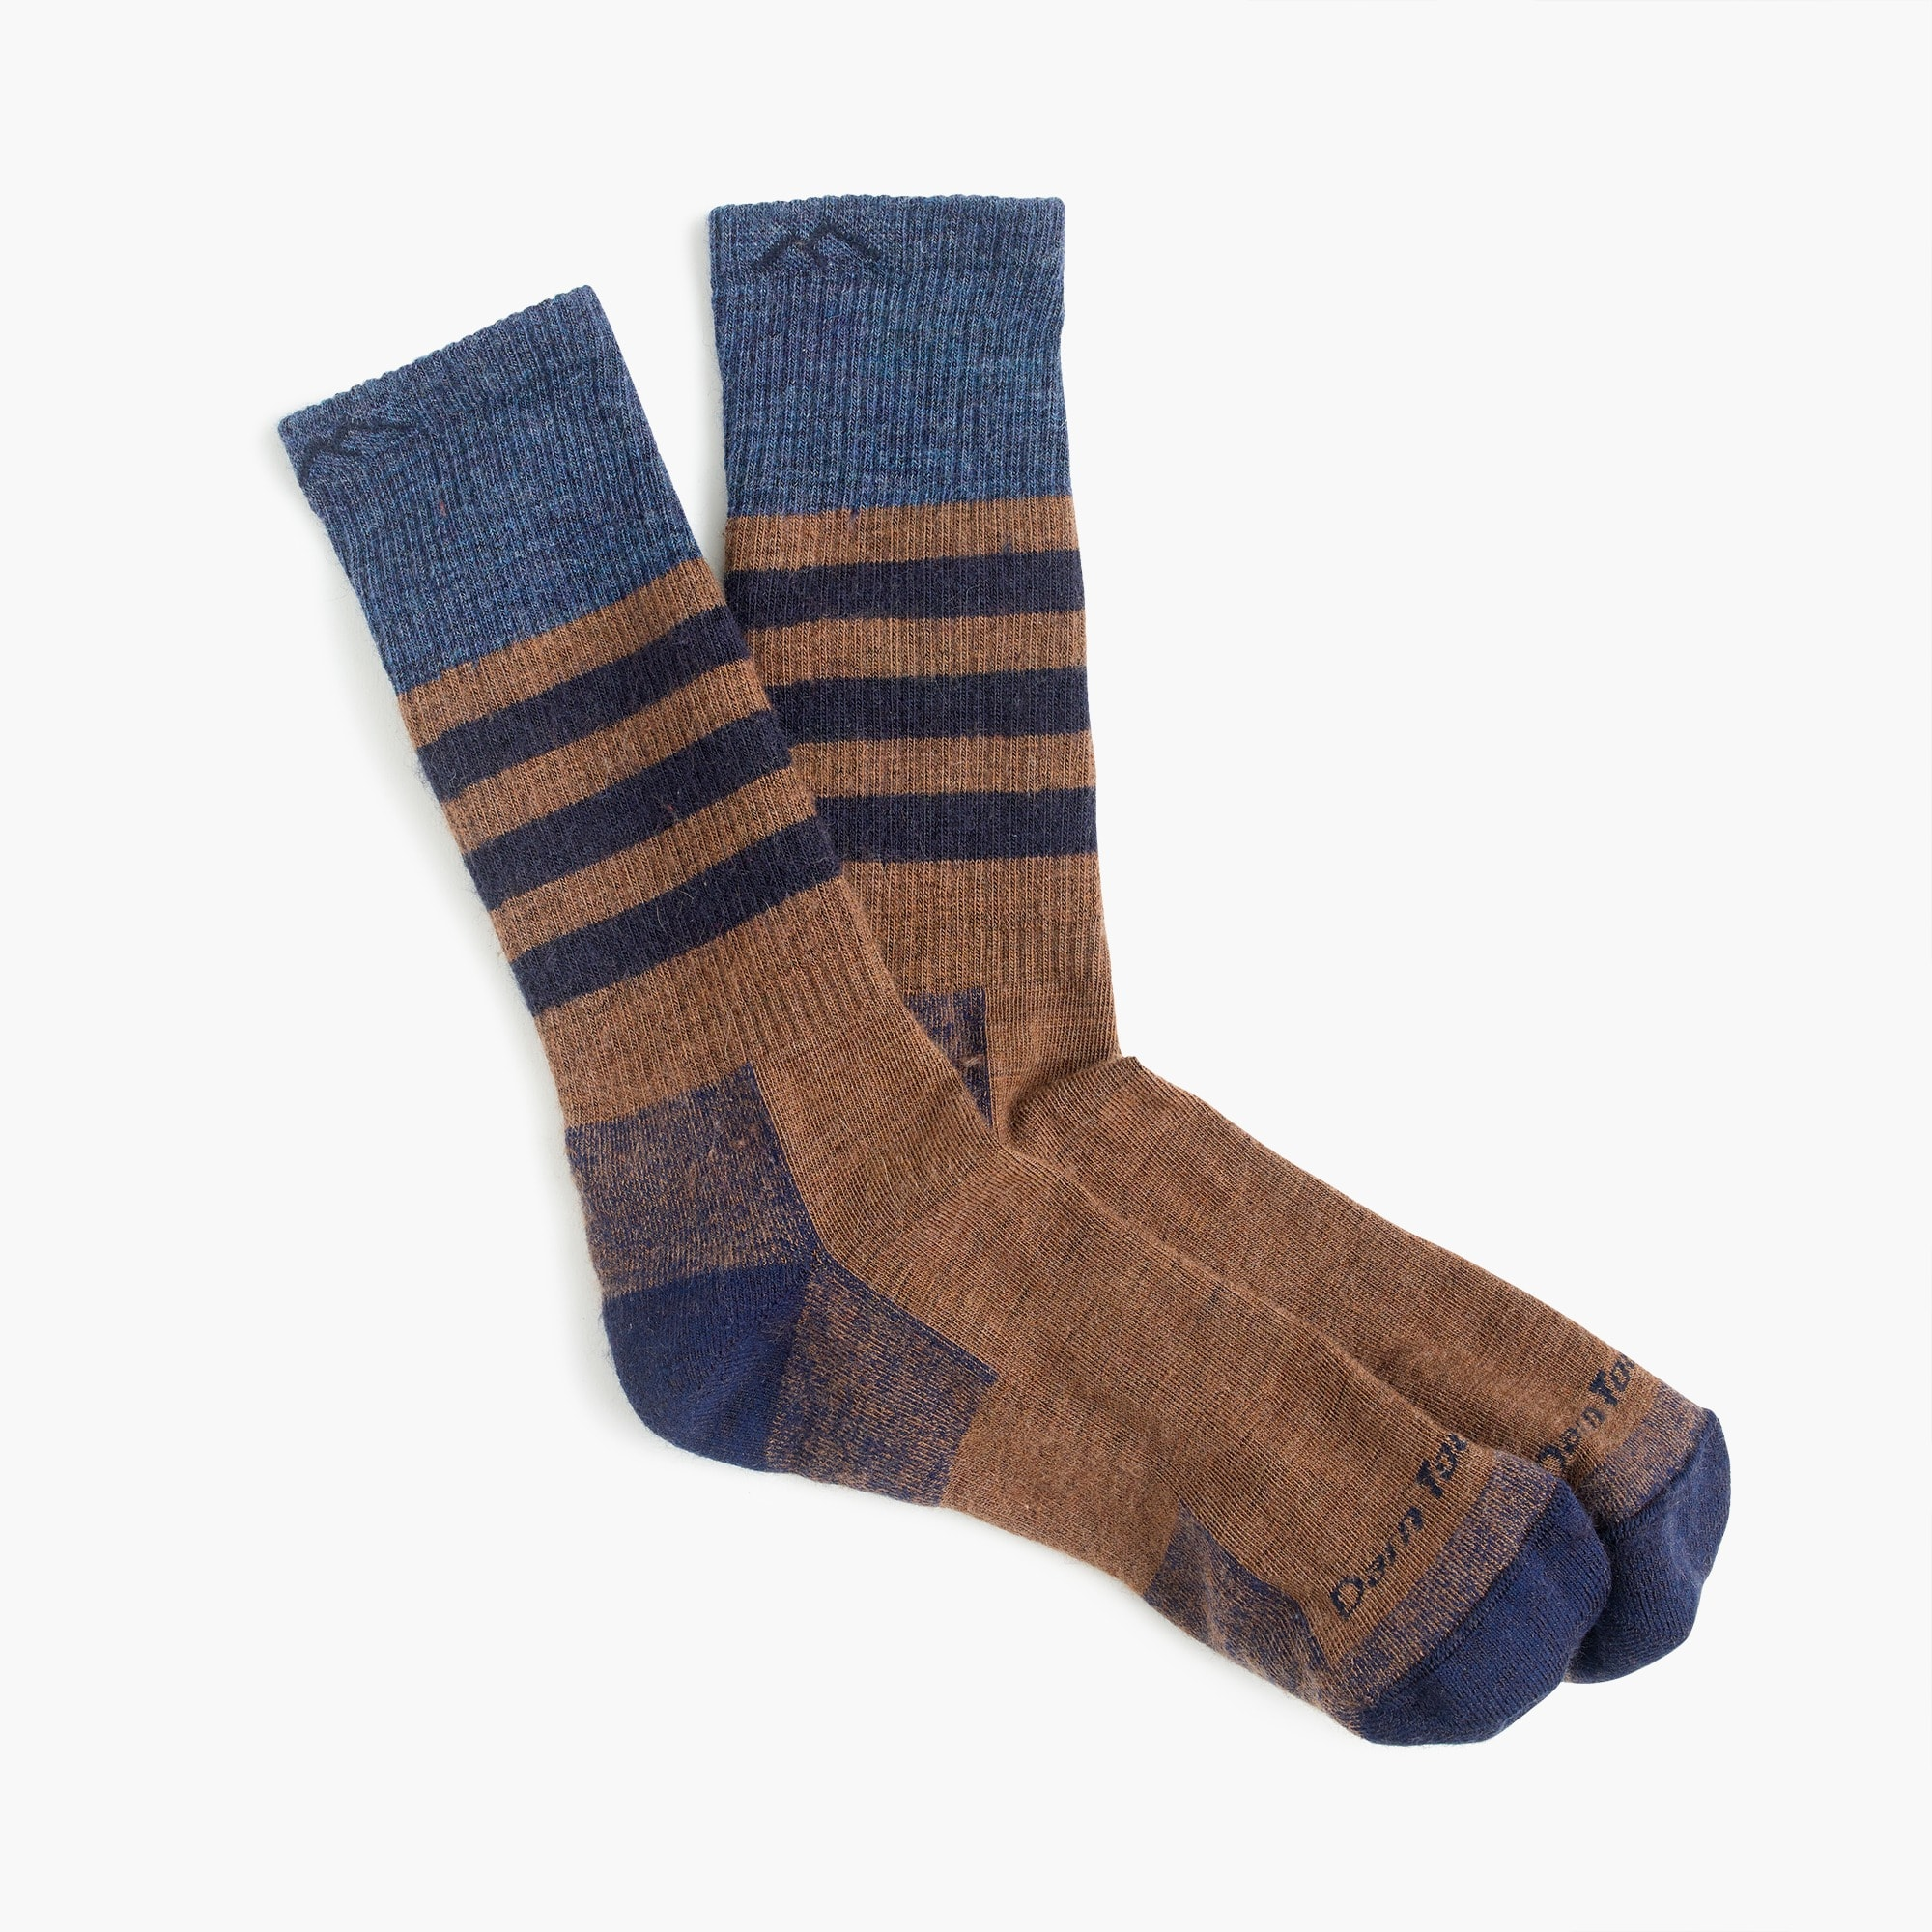 Darn Tough Vermont® for J.Crew triple-stripe socks men j.crew in good company c